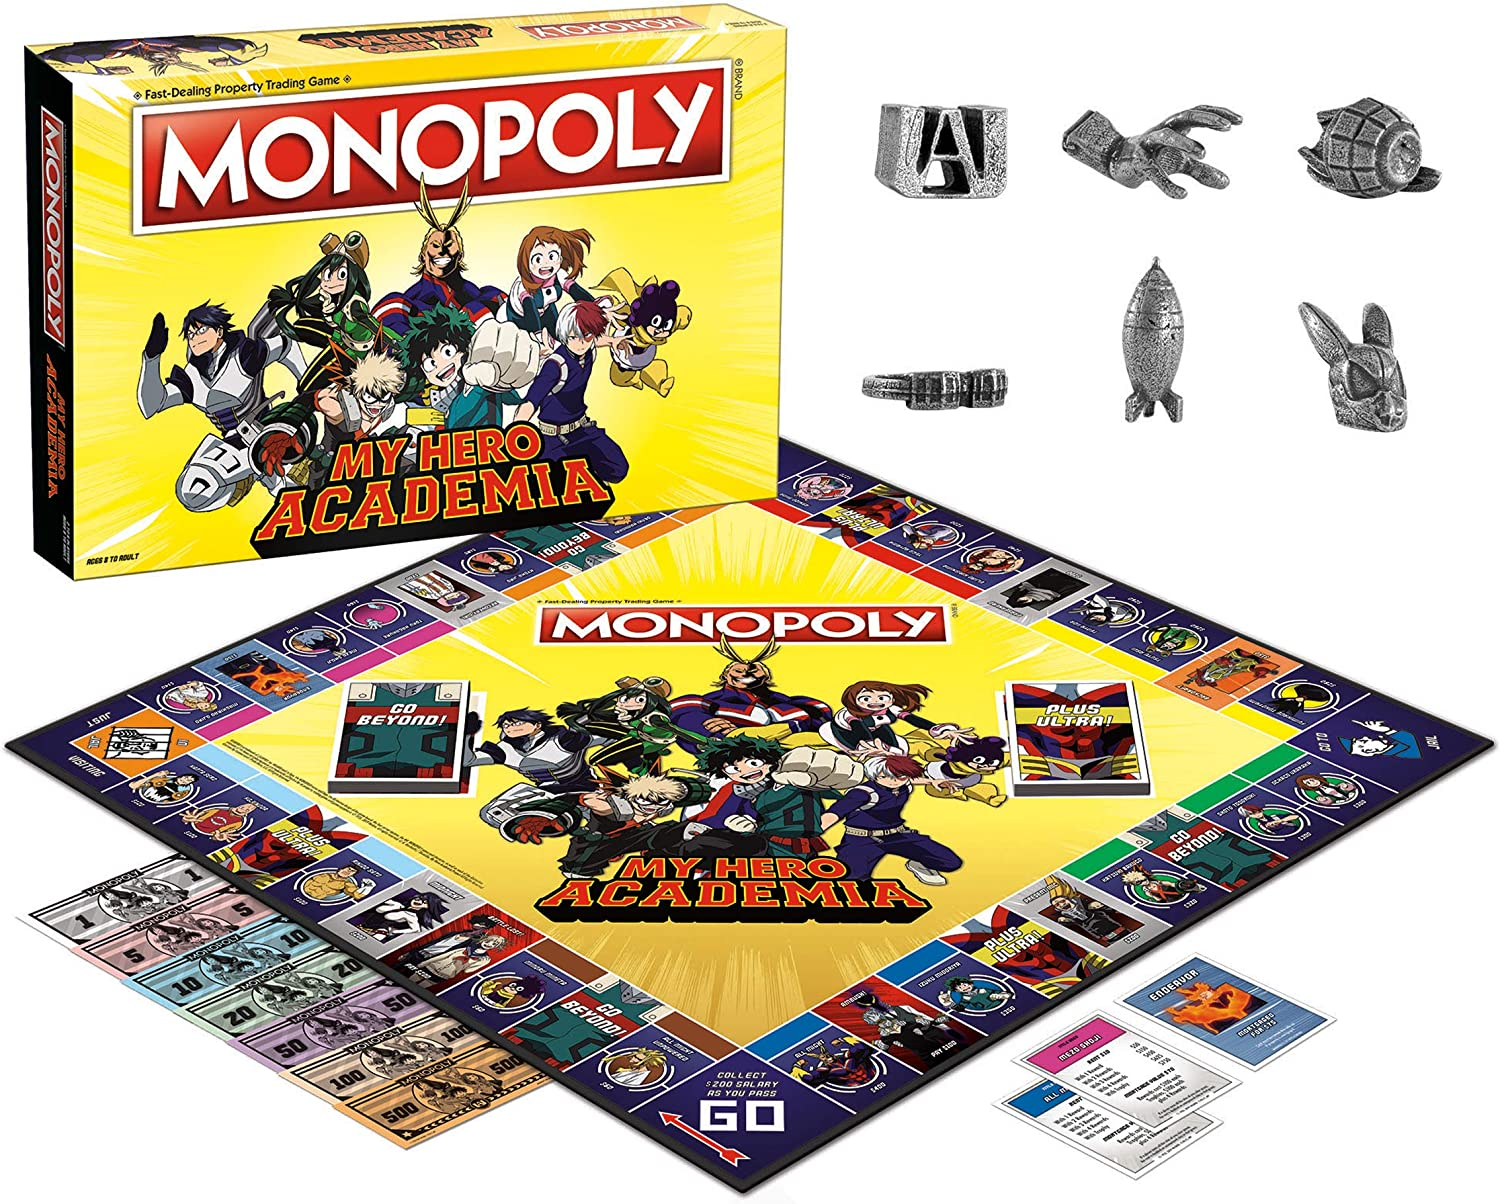 Amazon.com: Monopoly My Hero Academia Board Game - Juego de ...